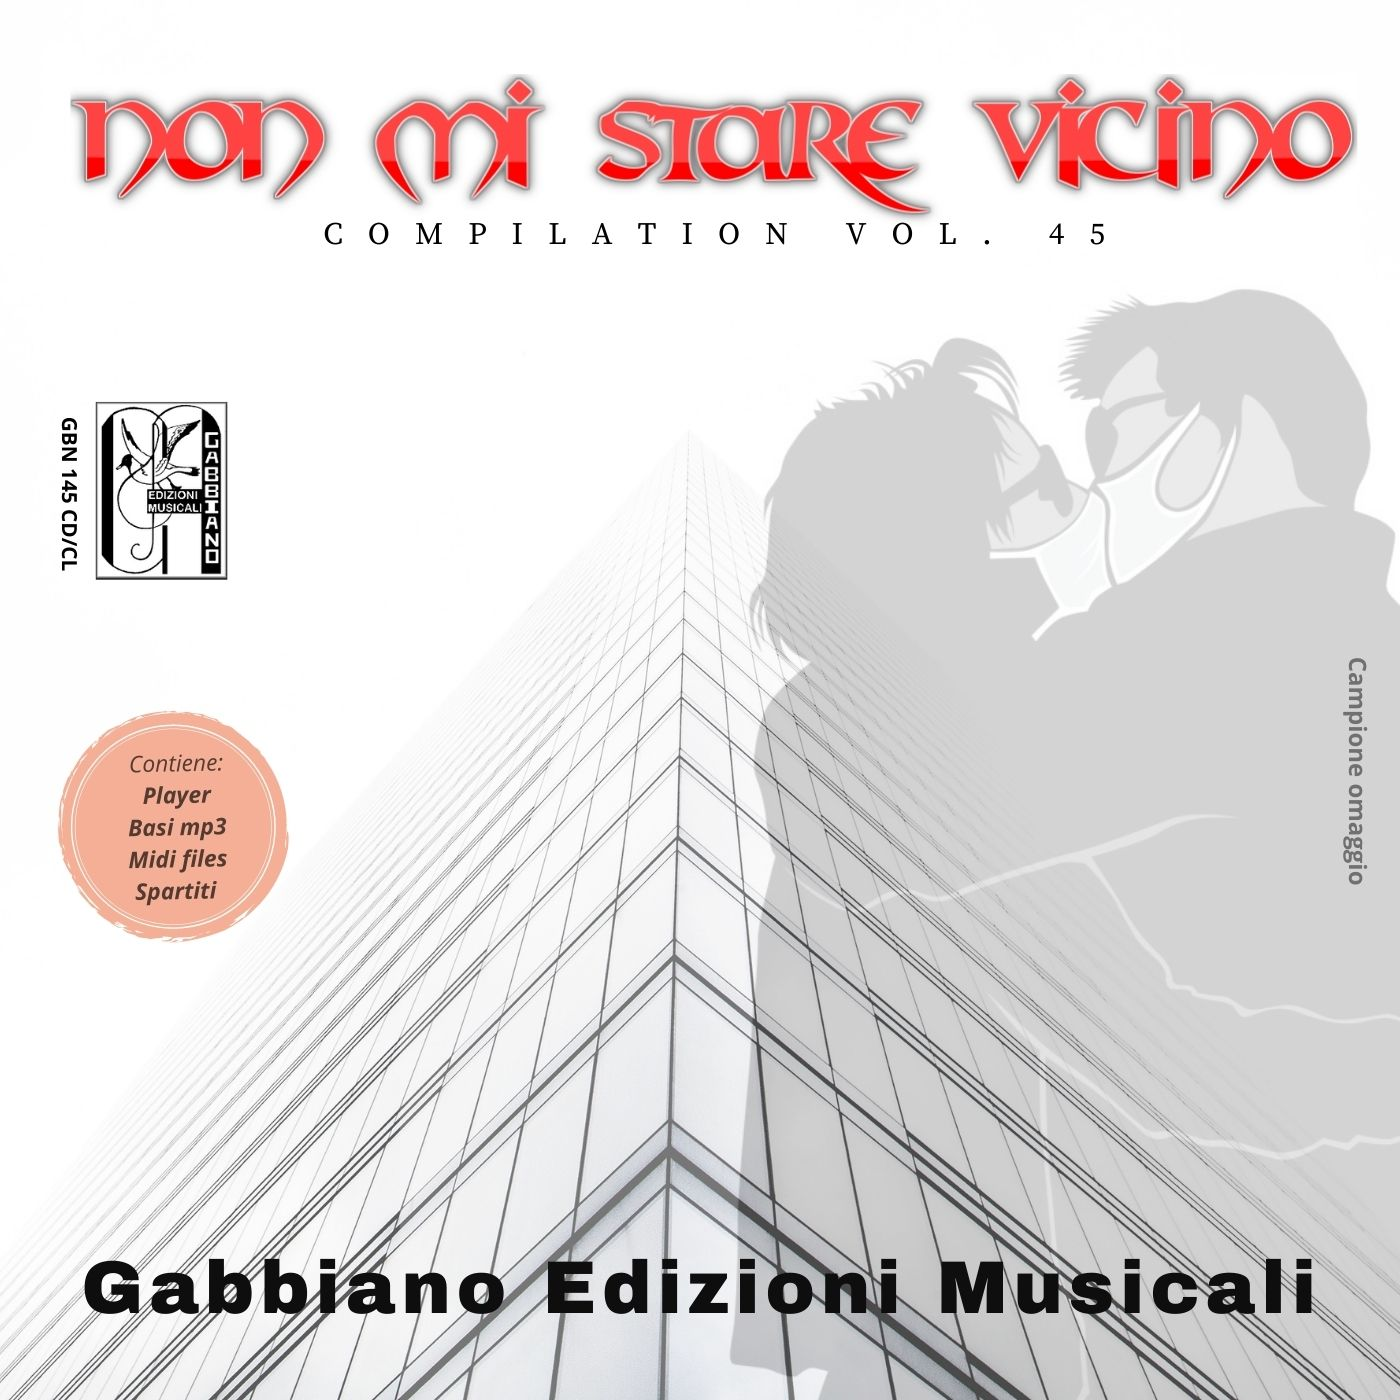 GBN145CD/CL - Non mi stare vicino (compilation) - Volume 45